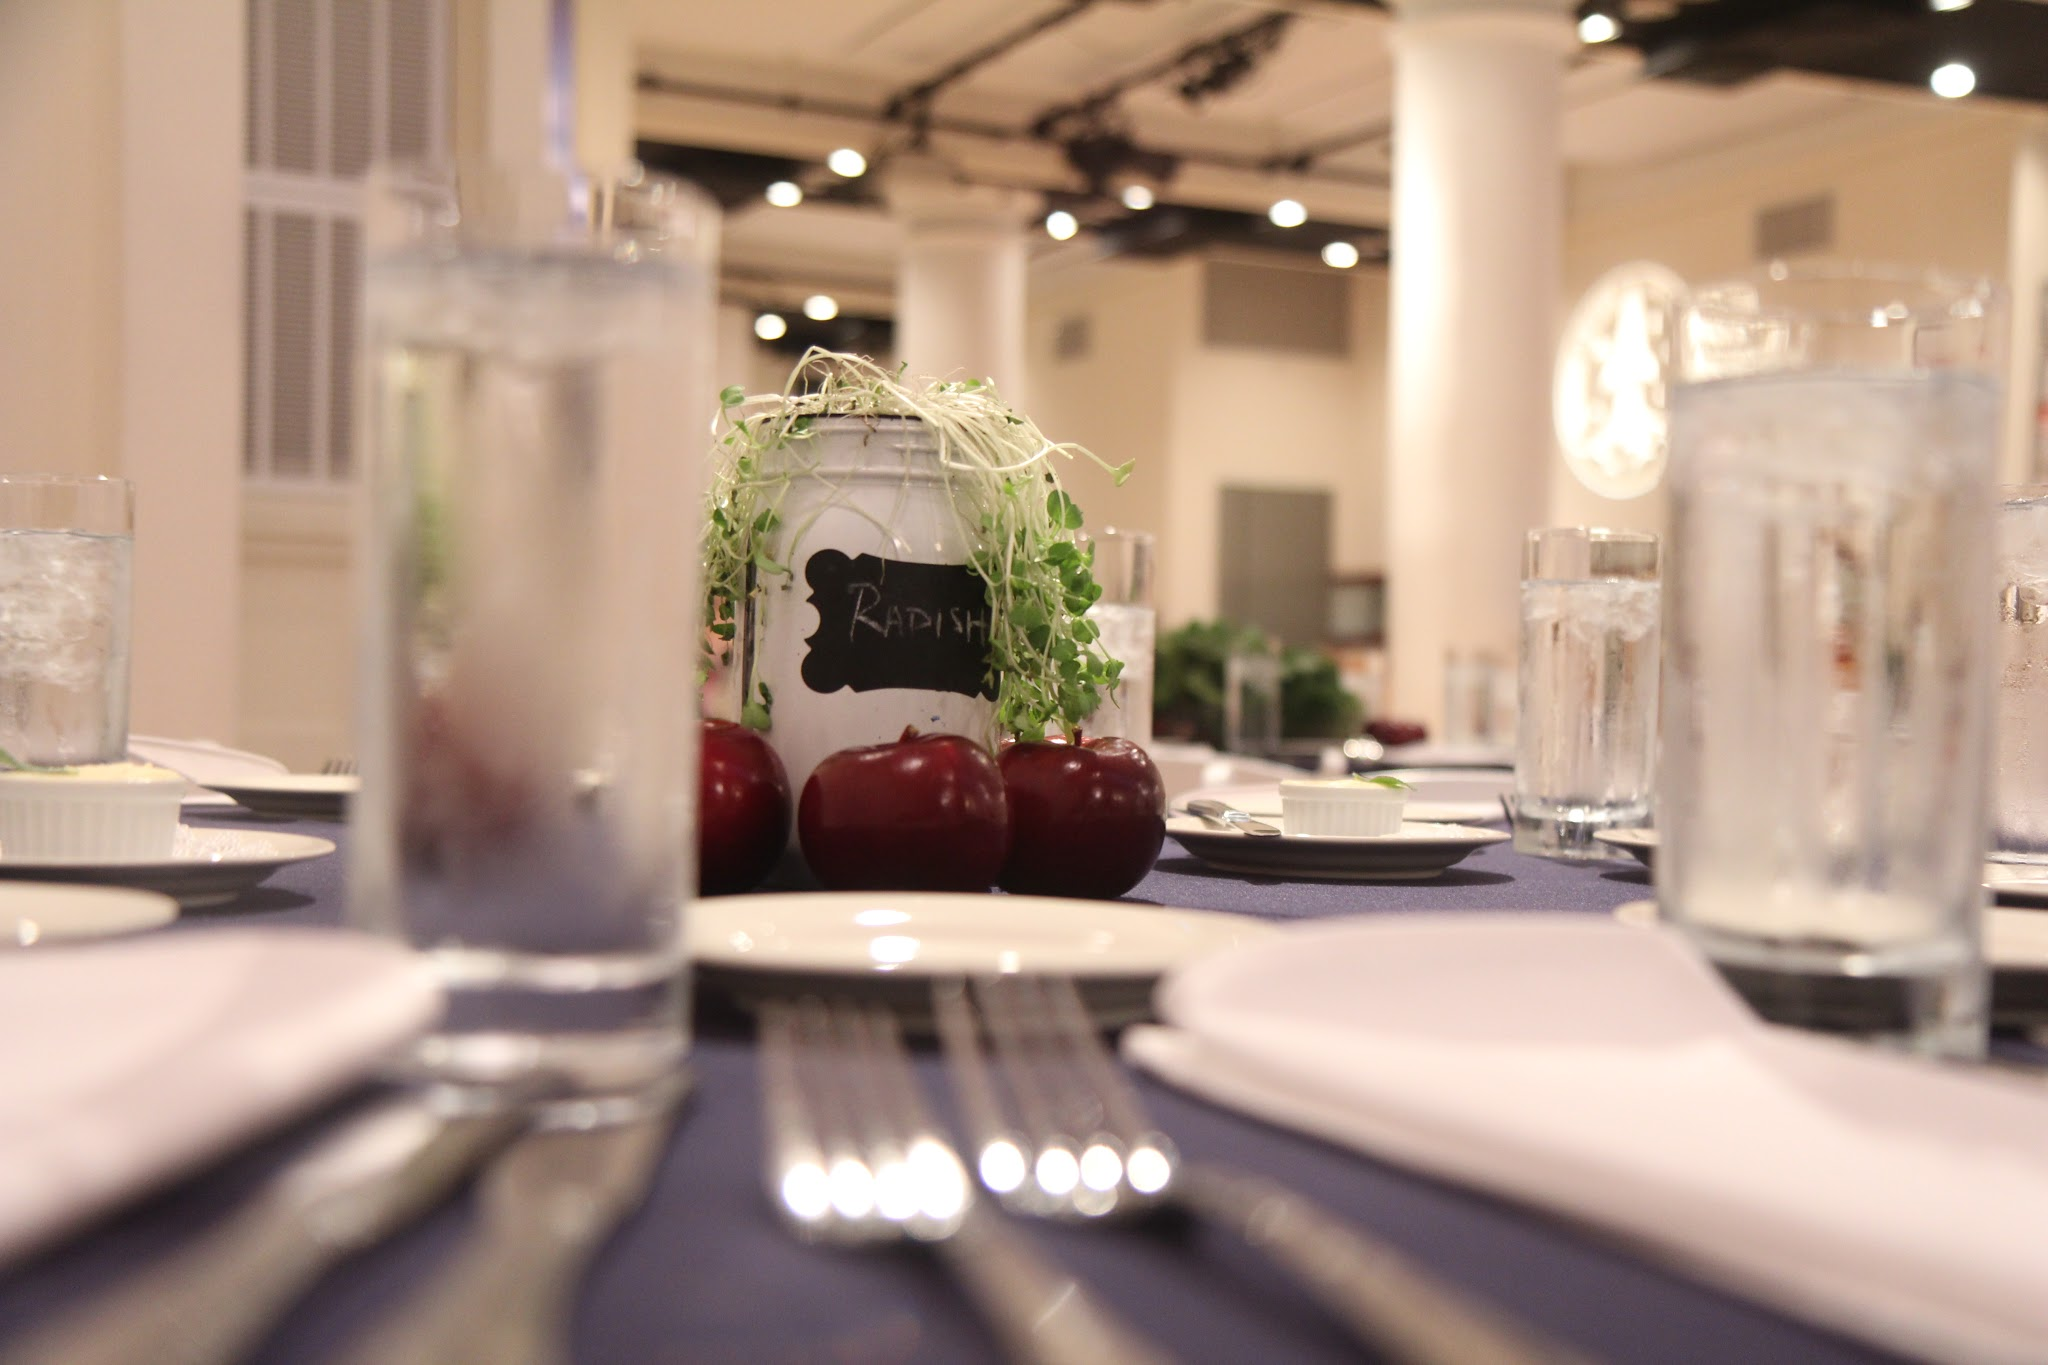 Hydroponically grown radishes and organic apples served as a unique centerpiece. Leading Indoor Agriculture Conference to Discuss Agriculture Technology, Vertical Farming At Its First New York Event at the HELEN MILLS Event Space and Theater in Chelsea, Manhattan.